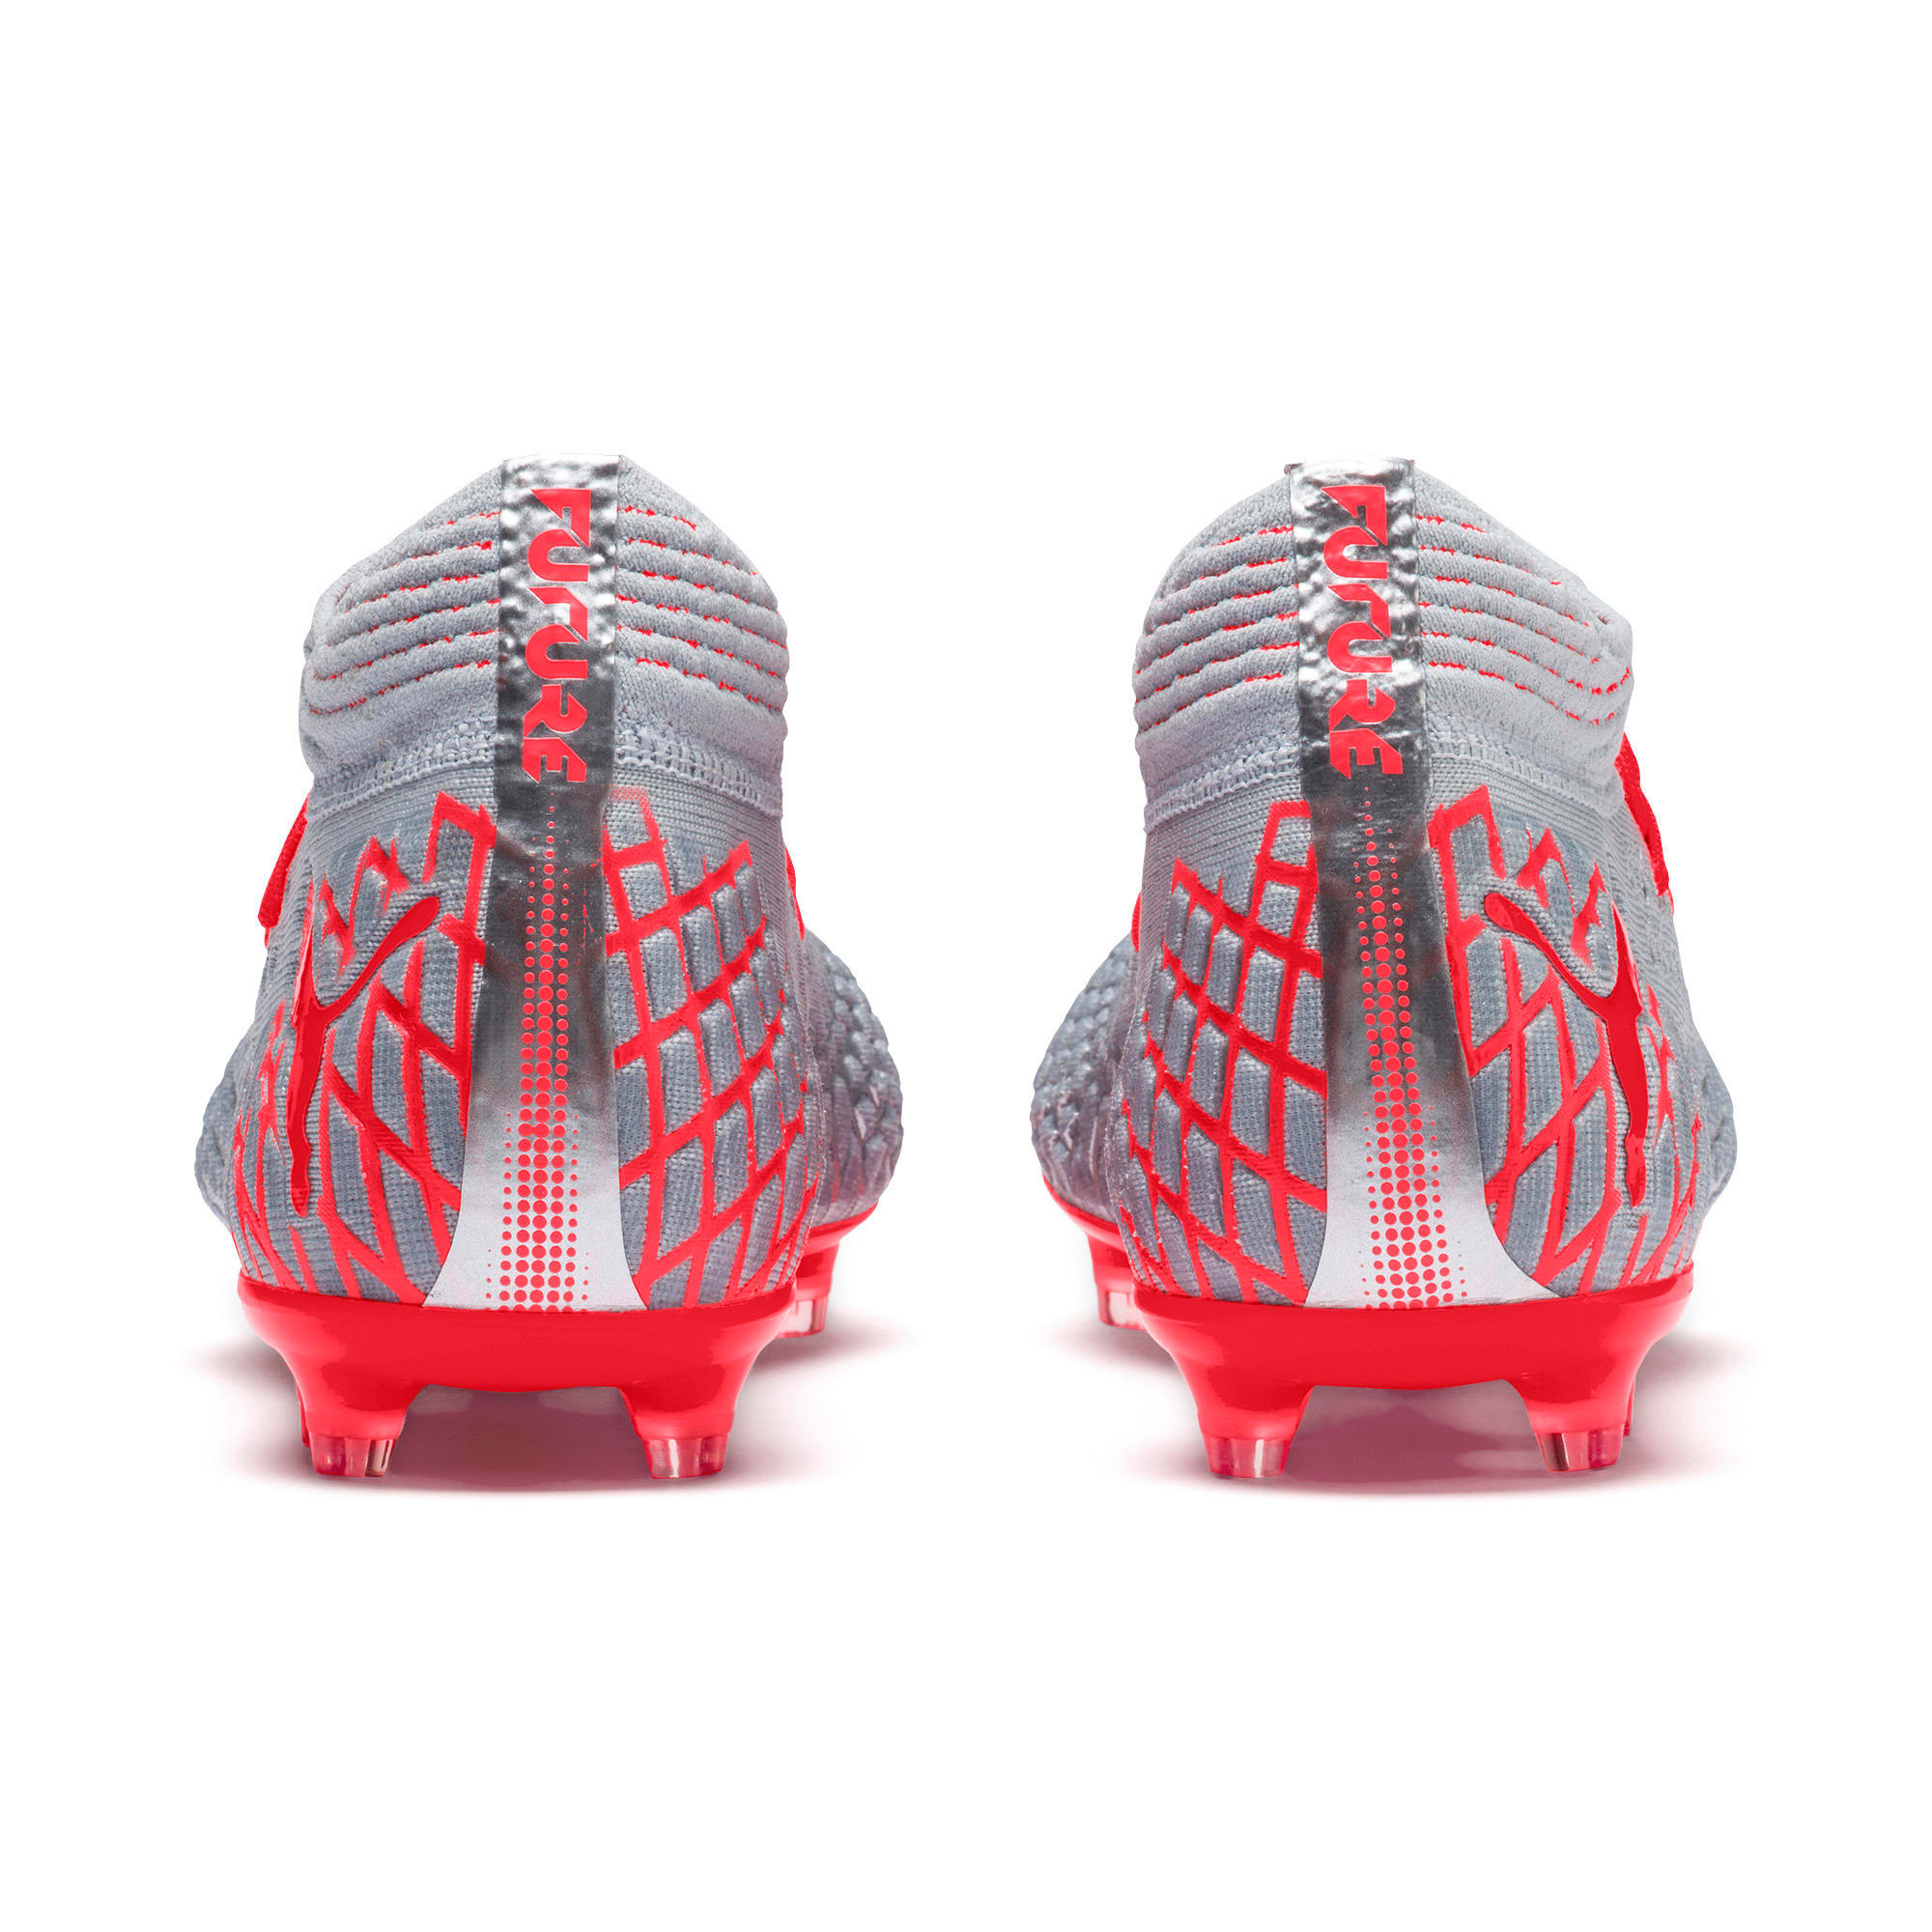 Thumbnail 4 of FUTURE 4.1 NETFIT FG/AG Men's Football Boots, Blue-Nrgy Red-High Risk Red, medium